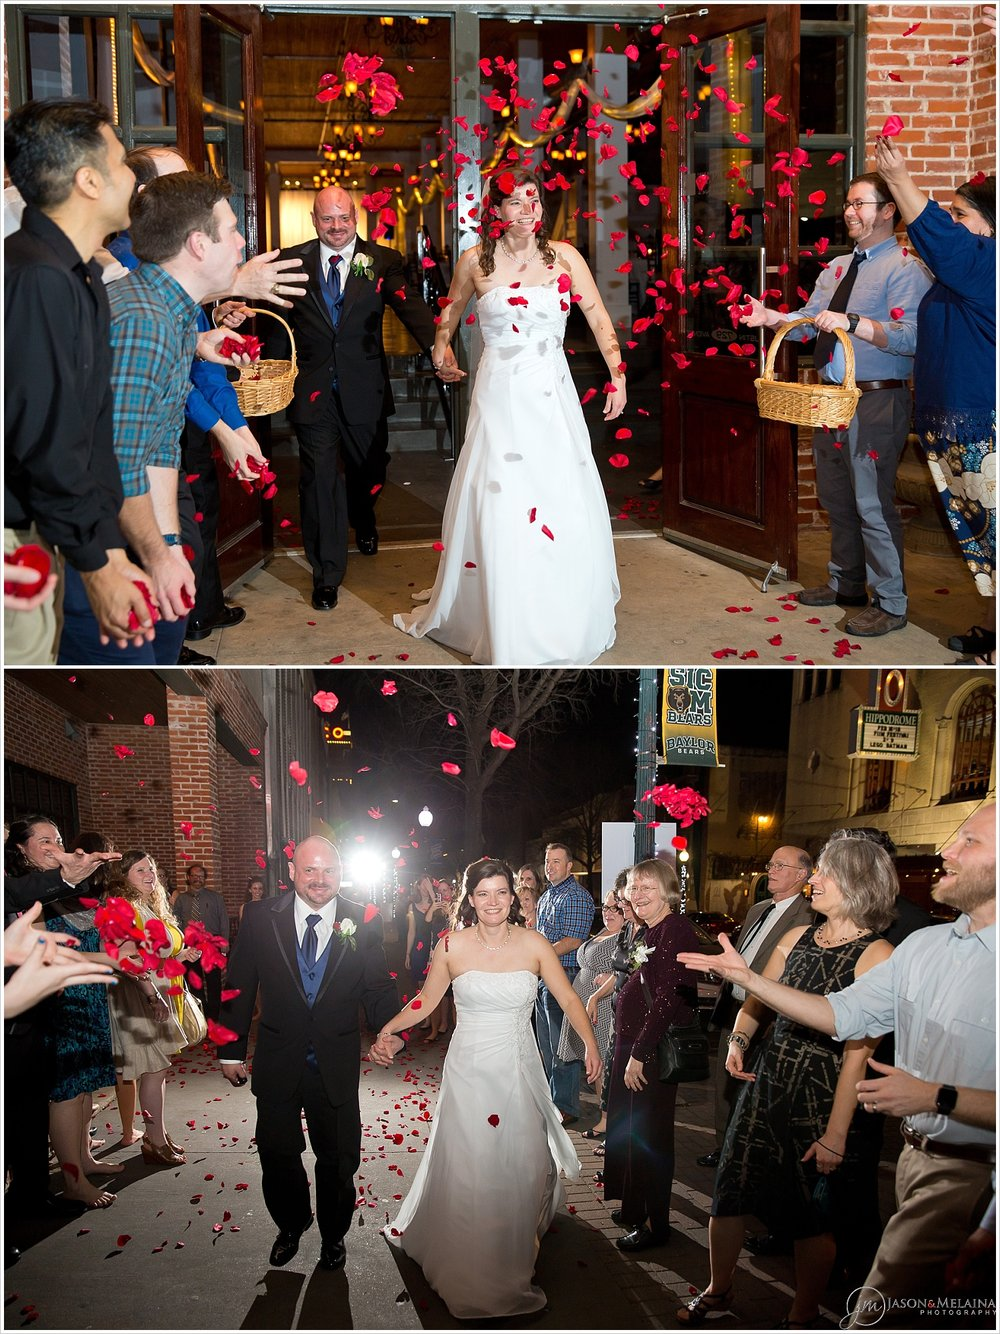 Bride and groom exit under rose petals, The Palladium, Waco, Texas